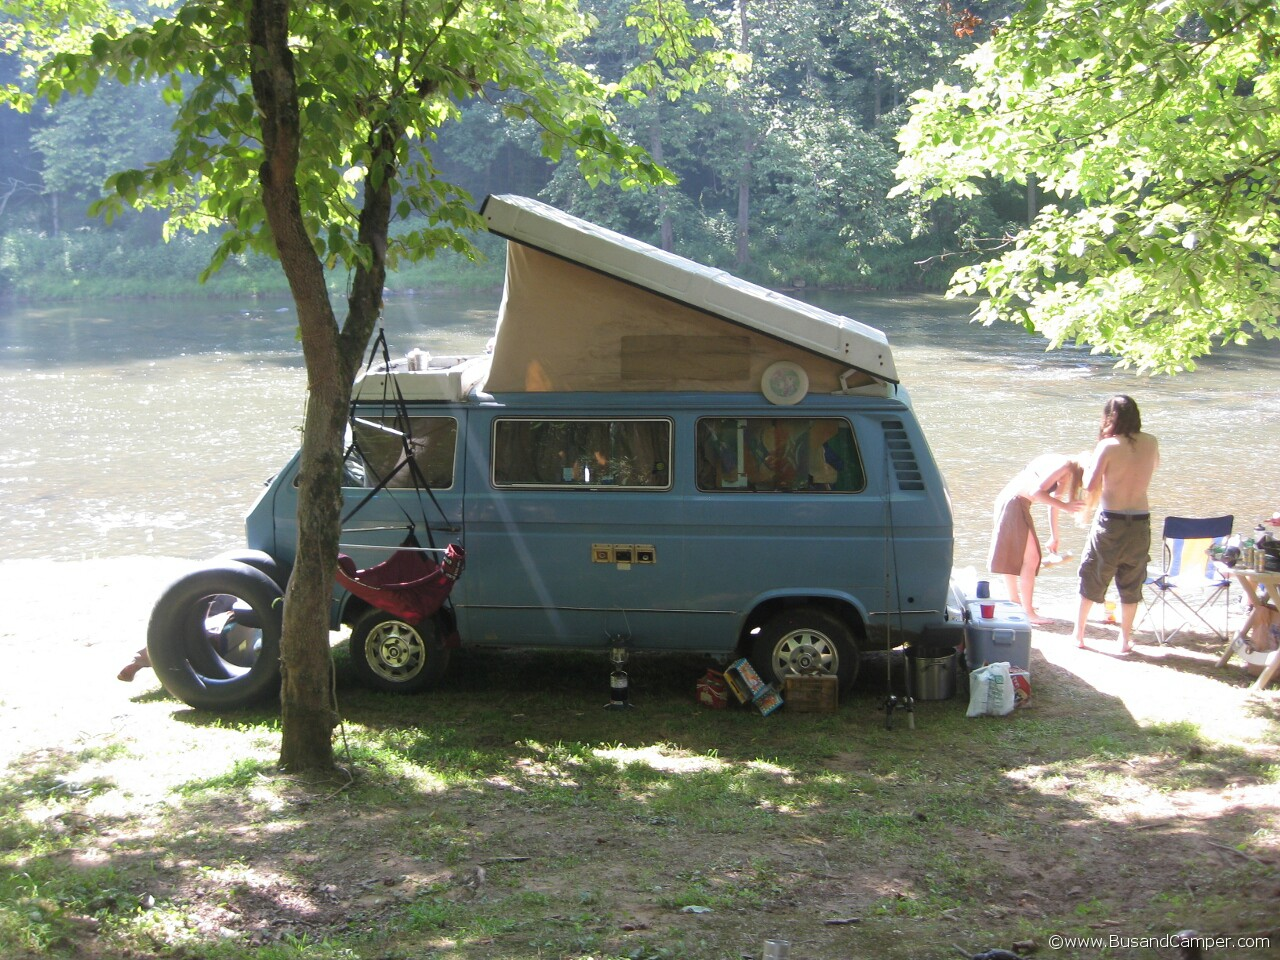 Perfect VW Campout setting